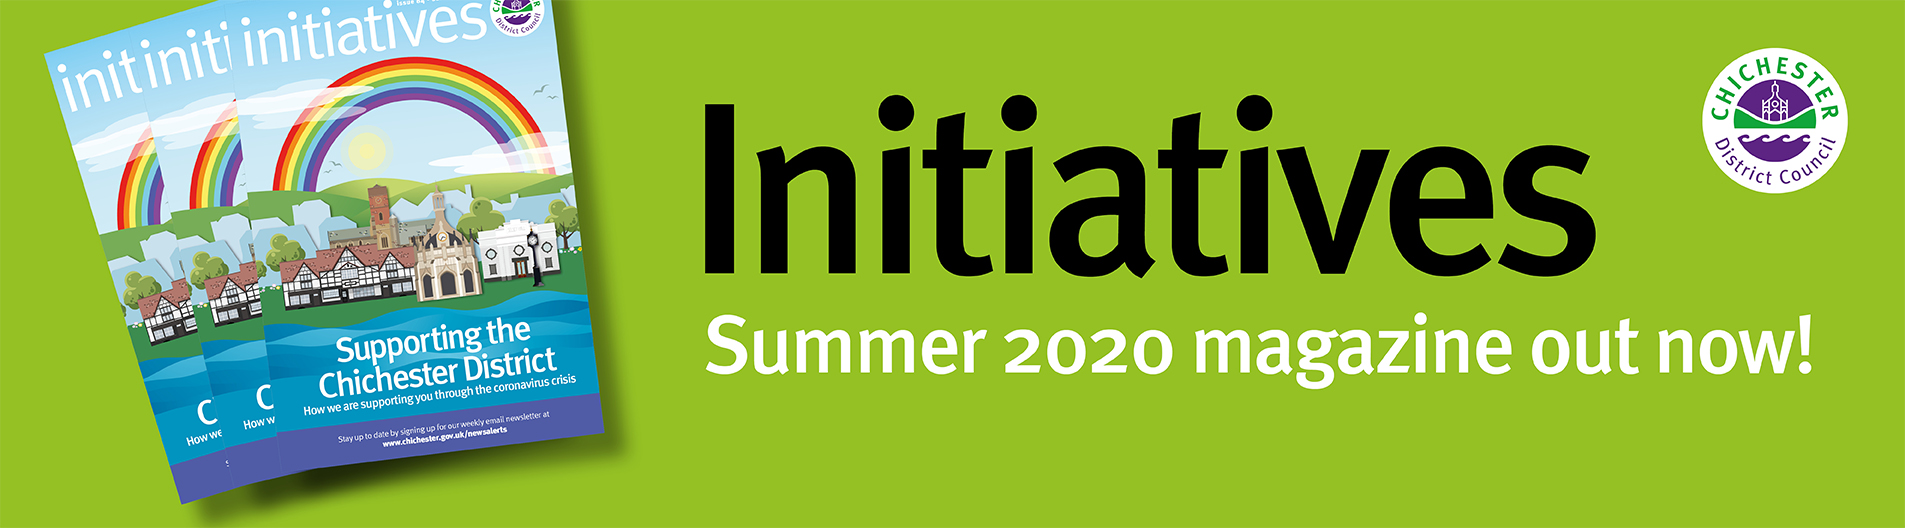 Initiatives summer 2020 out now